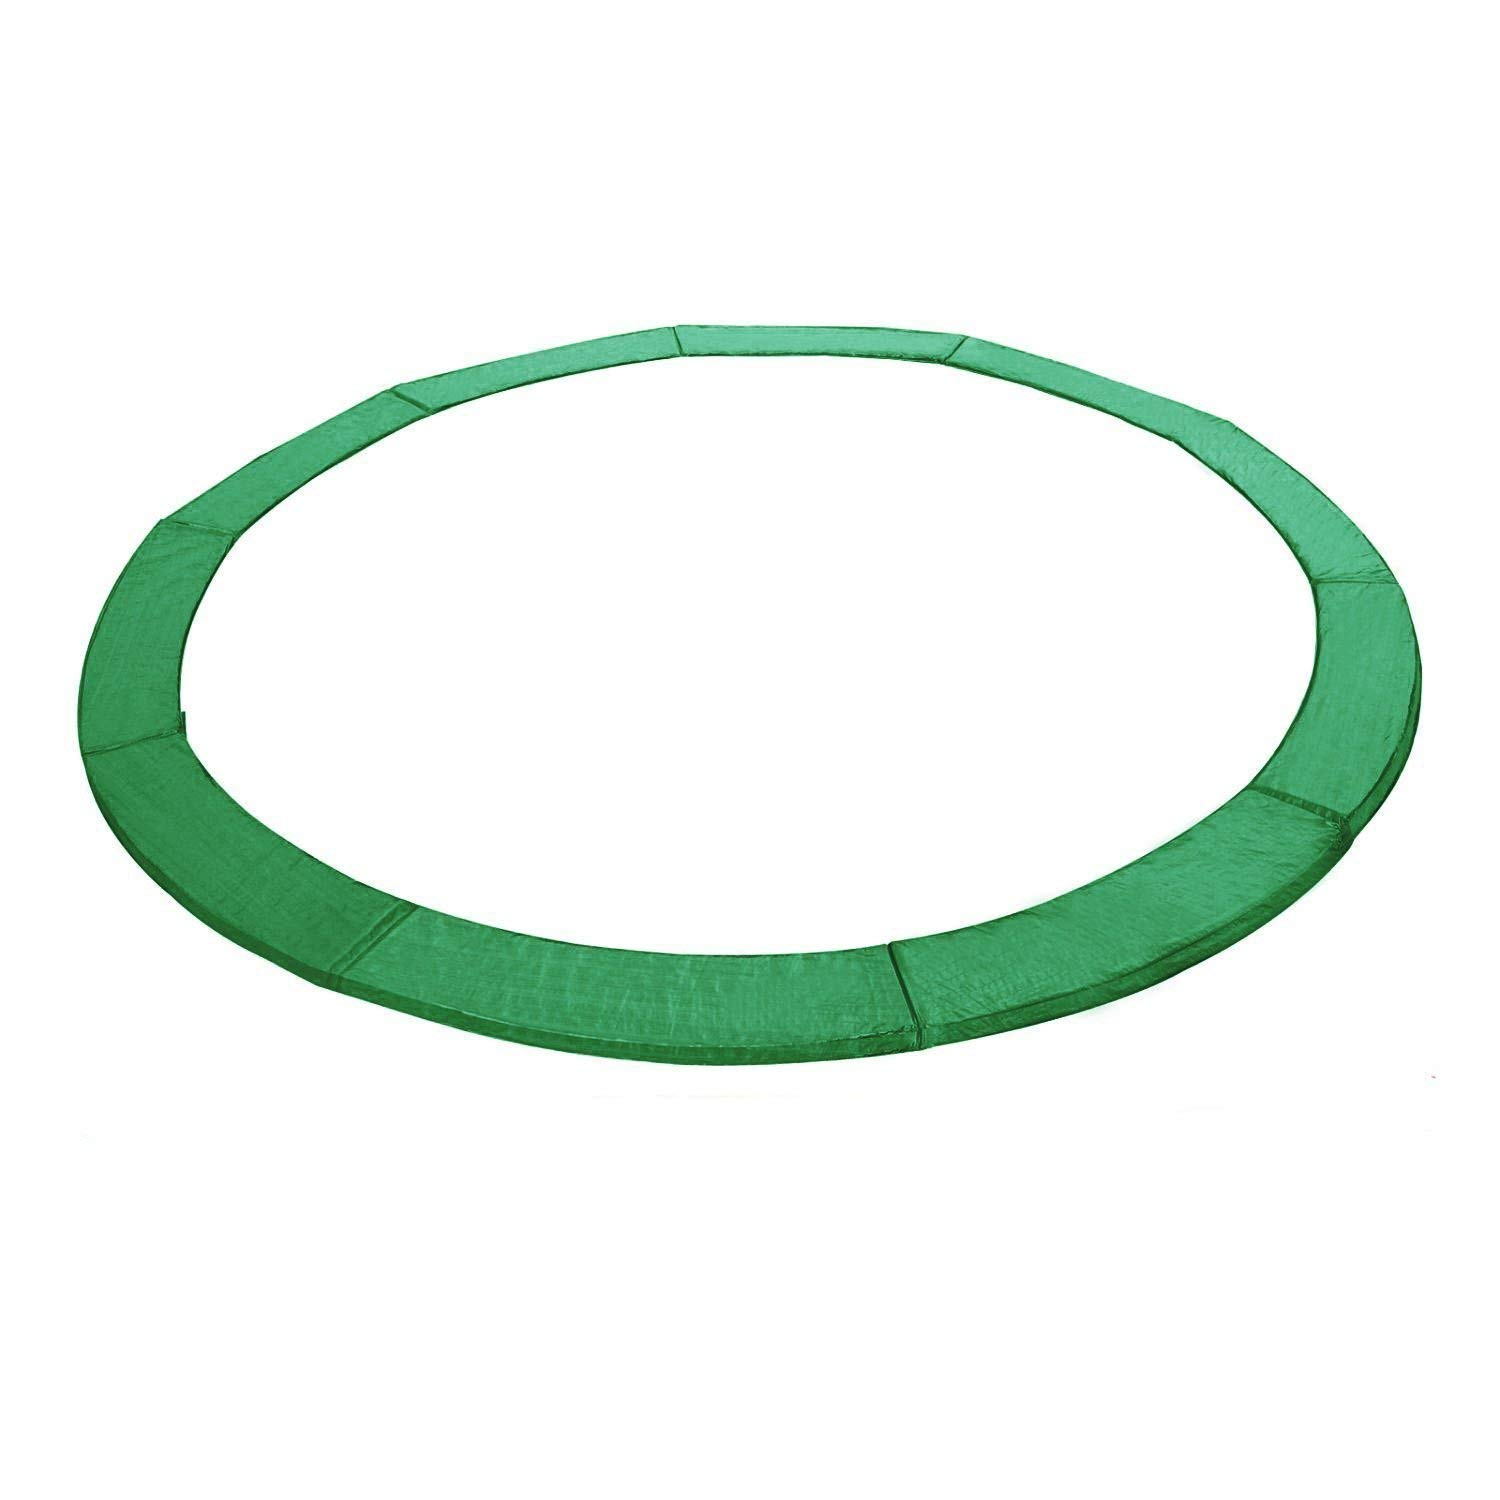 Exacme Trampoline Replacement Safety Spring Cover Round Frame Pad without Holes(Green, 15 Foot) by Exacme